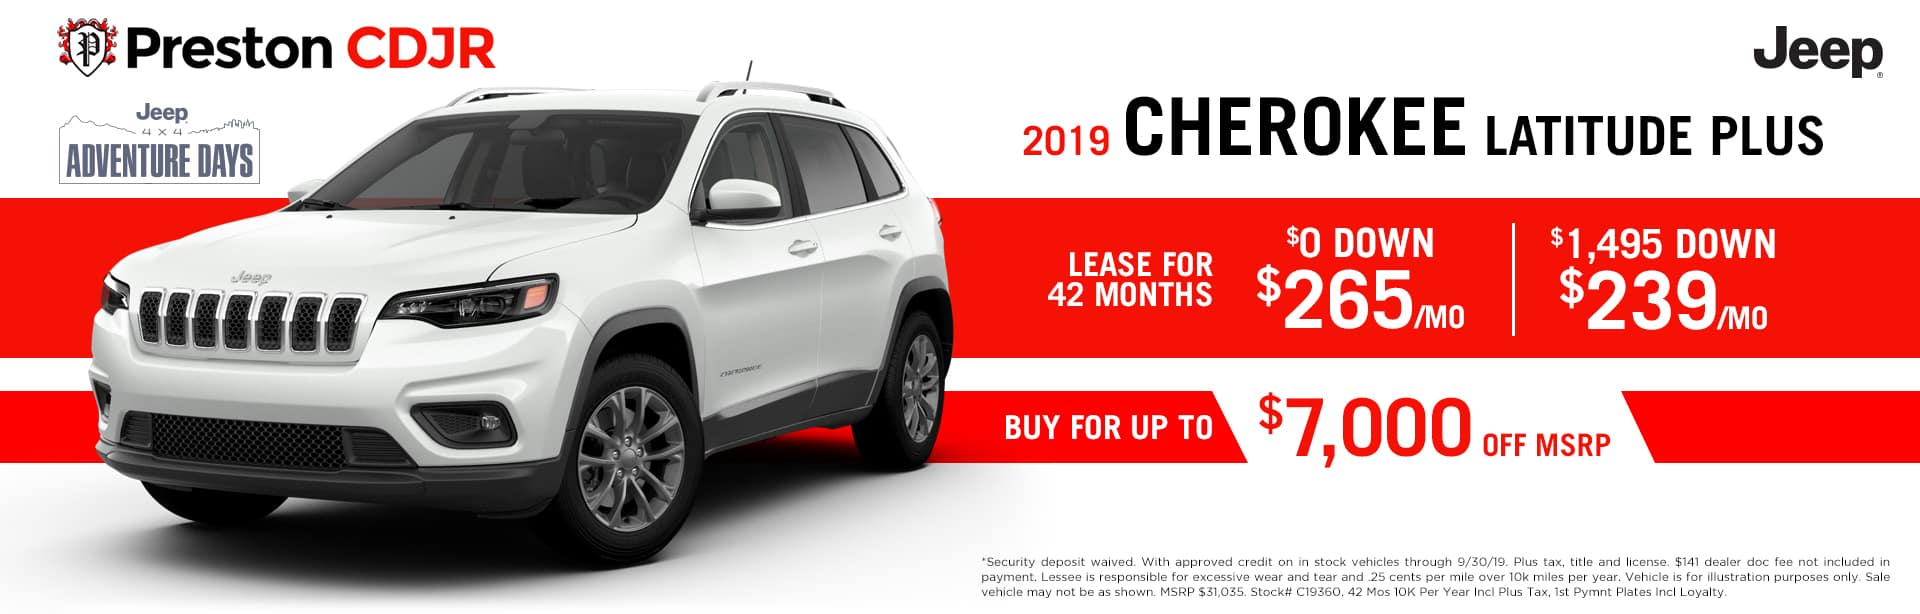 September special on the 2019 Jeep Cherokee